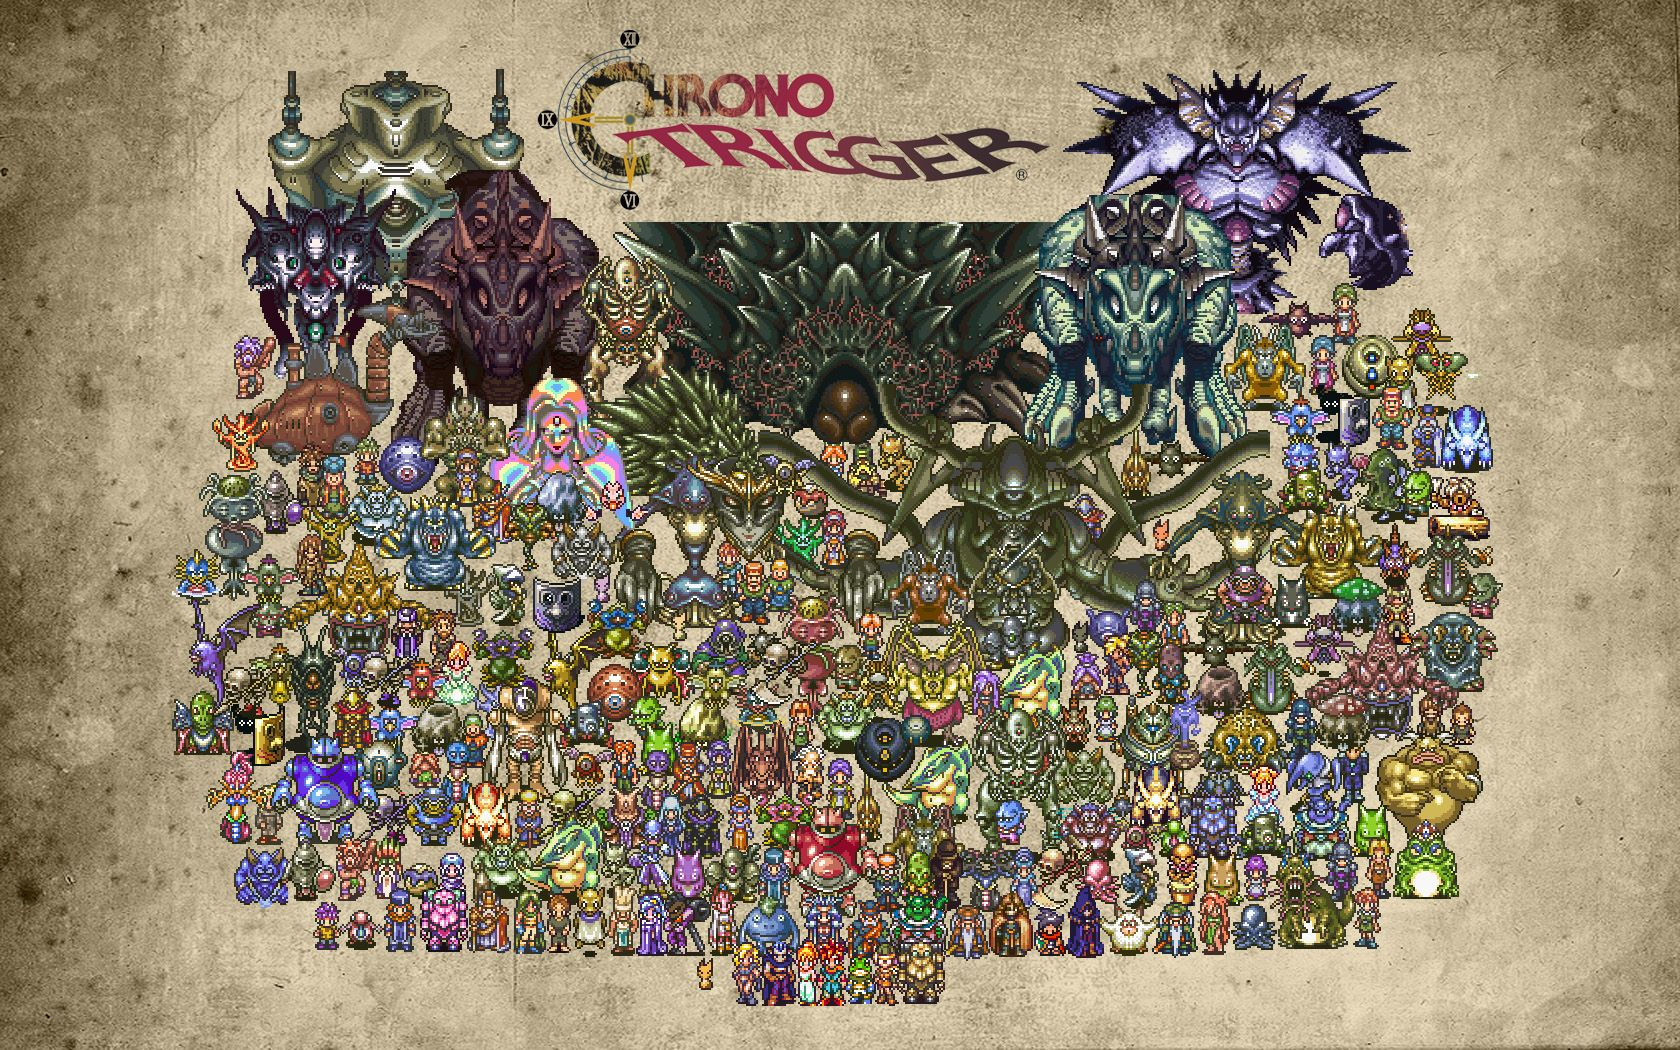 The story of Chrono Trigger is the story of a Rare ...